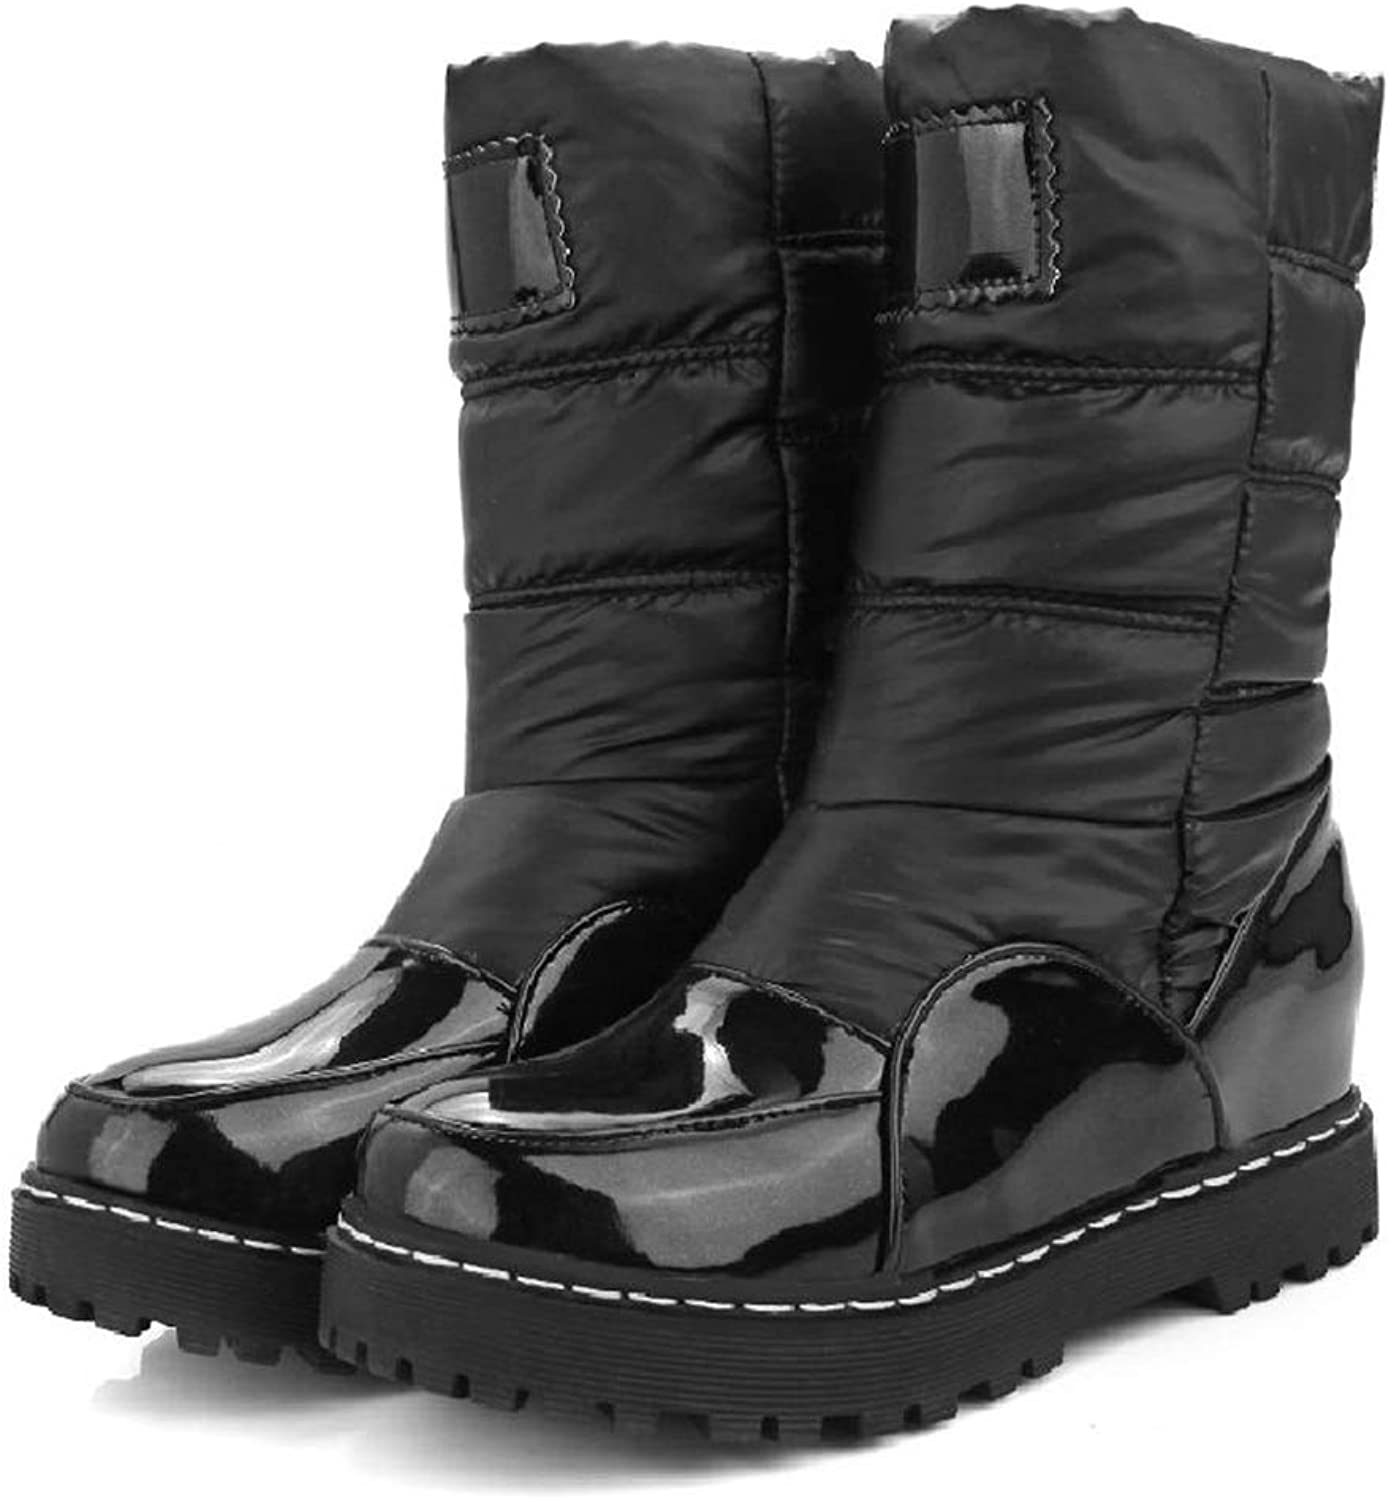 Hoxekle Winter Woman Mother Boots Slip-Resistant Waterproof Cotton-Padded shoes Women Maternity Plush Snow Boots